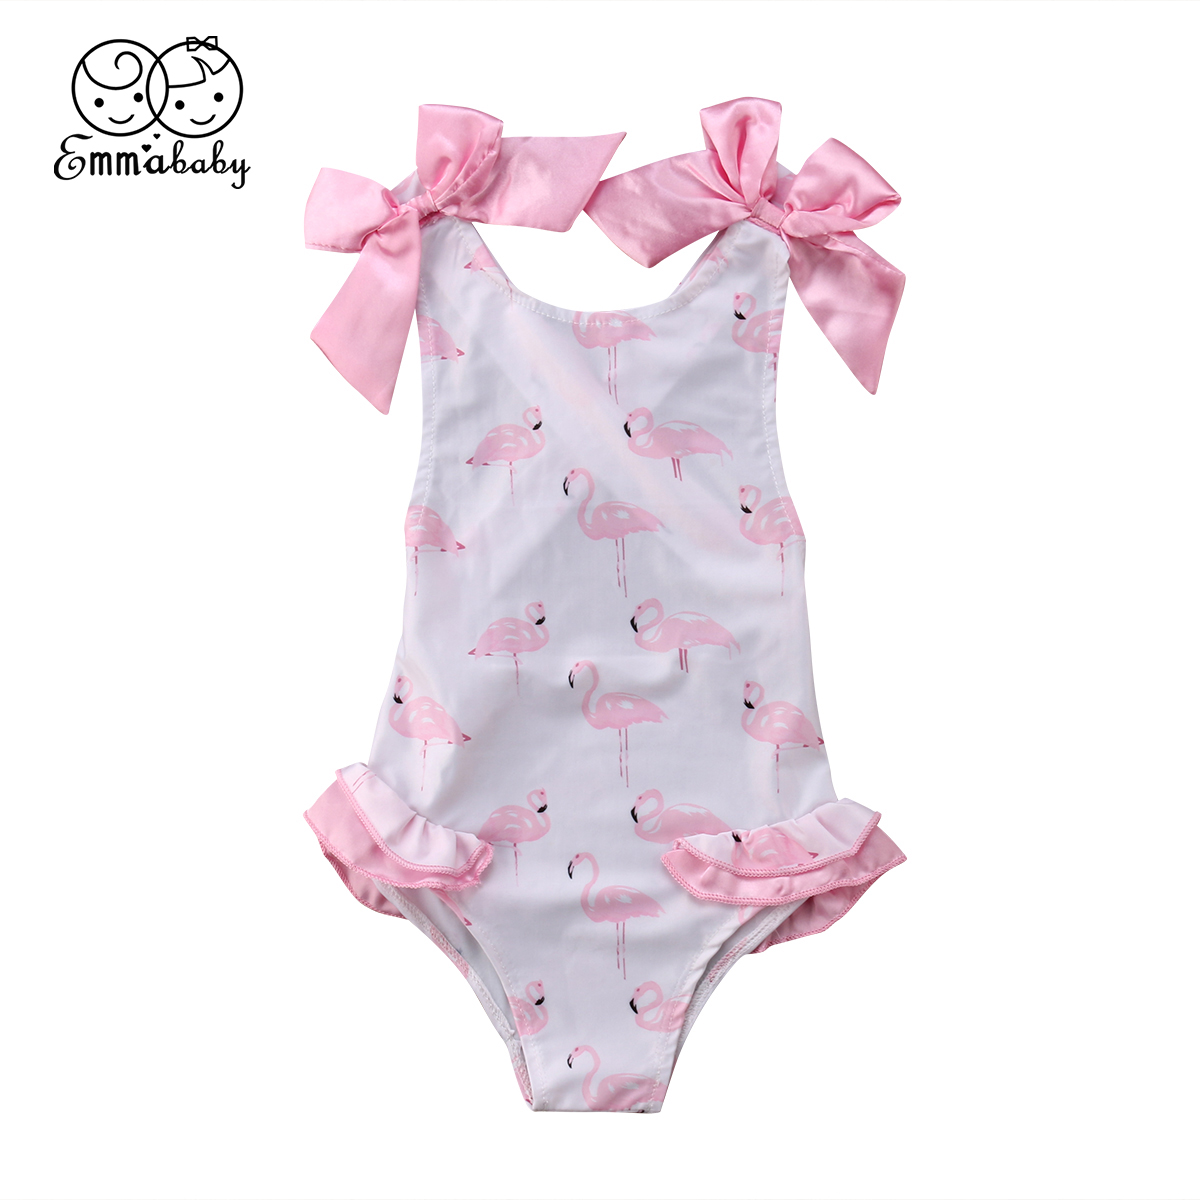 Pudcoco 2019 Brand Summer Kids Baby Girl Bikini Suit Bowknot Flamingo Swimwear Beachwear Swimming 1-6y Complete In Specifications Swimwear